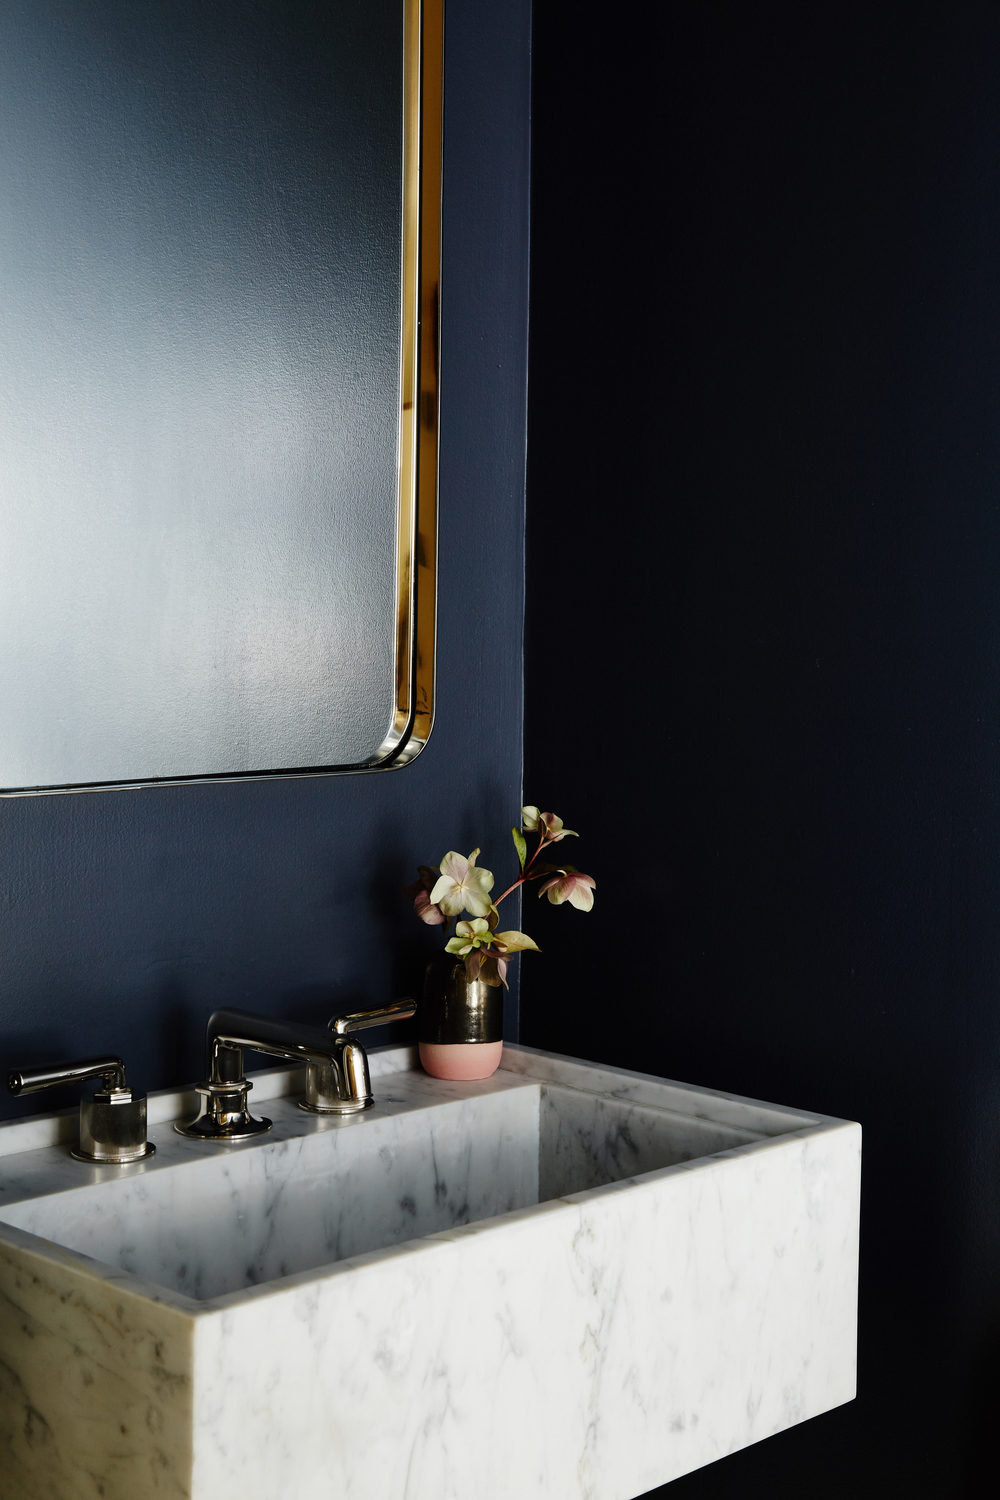 6 Ways to Use the Trendy Navy Blue and Gold Color Scheme 07 navy blue The Trendy Navy Blue and Gold Color Scheme – 6 ways to use it 6 Ways to Use the Trendy Navy Blue and Gold Color Scheme 07